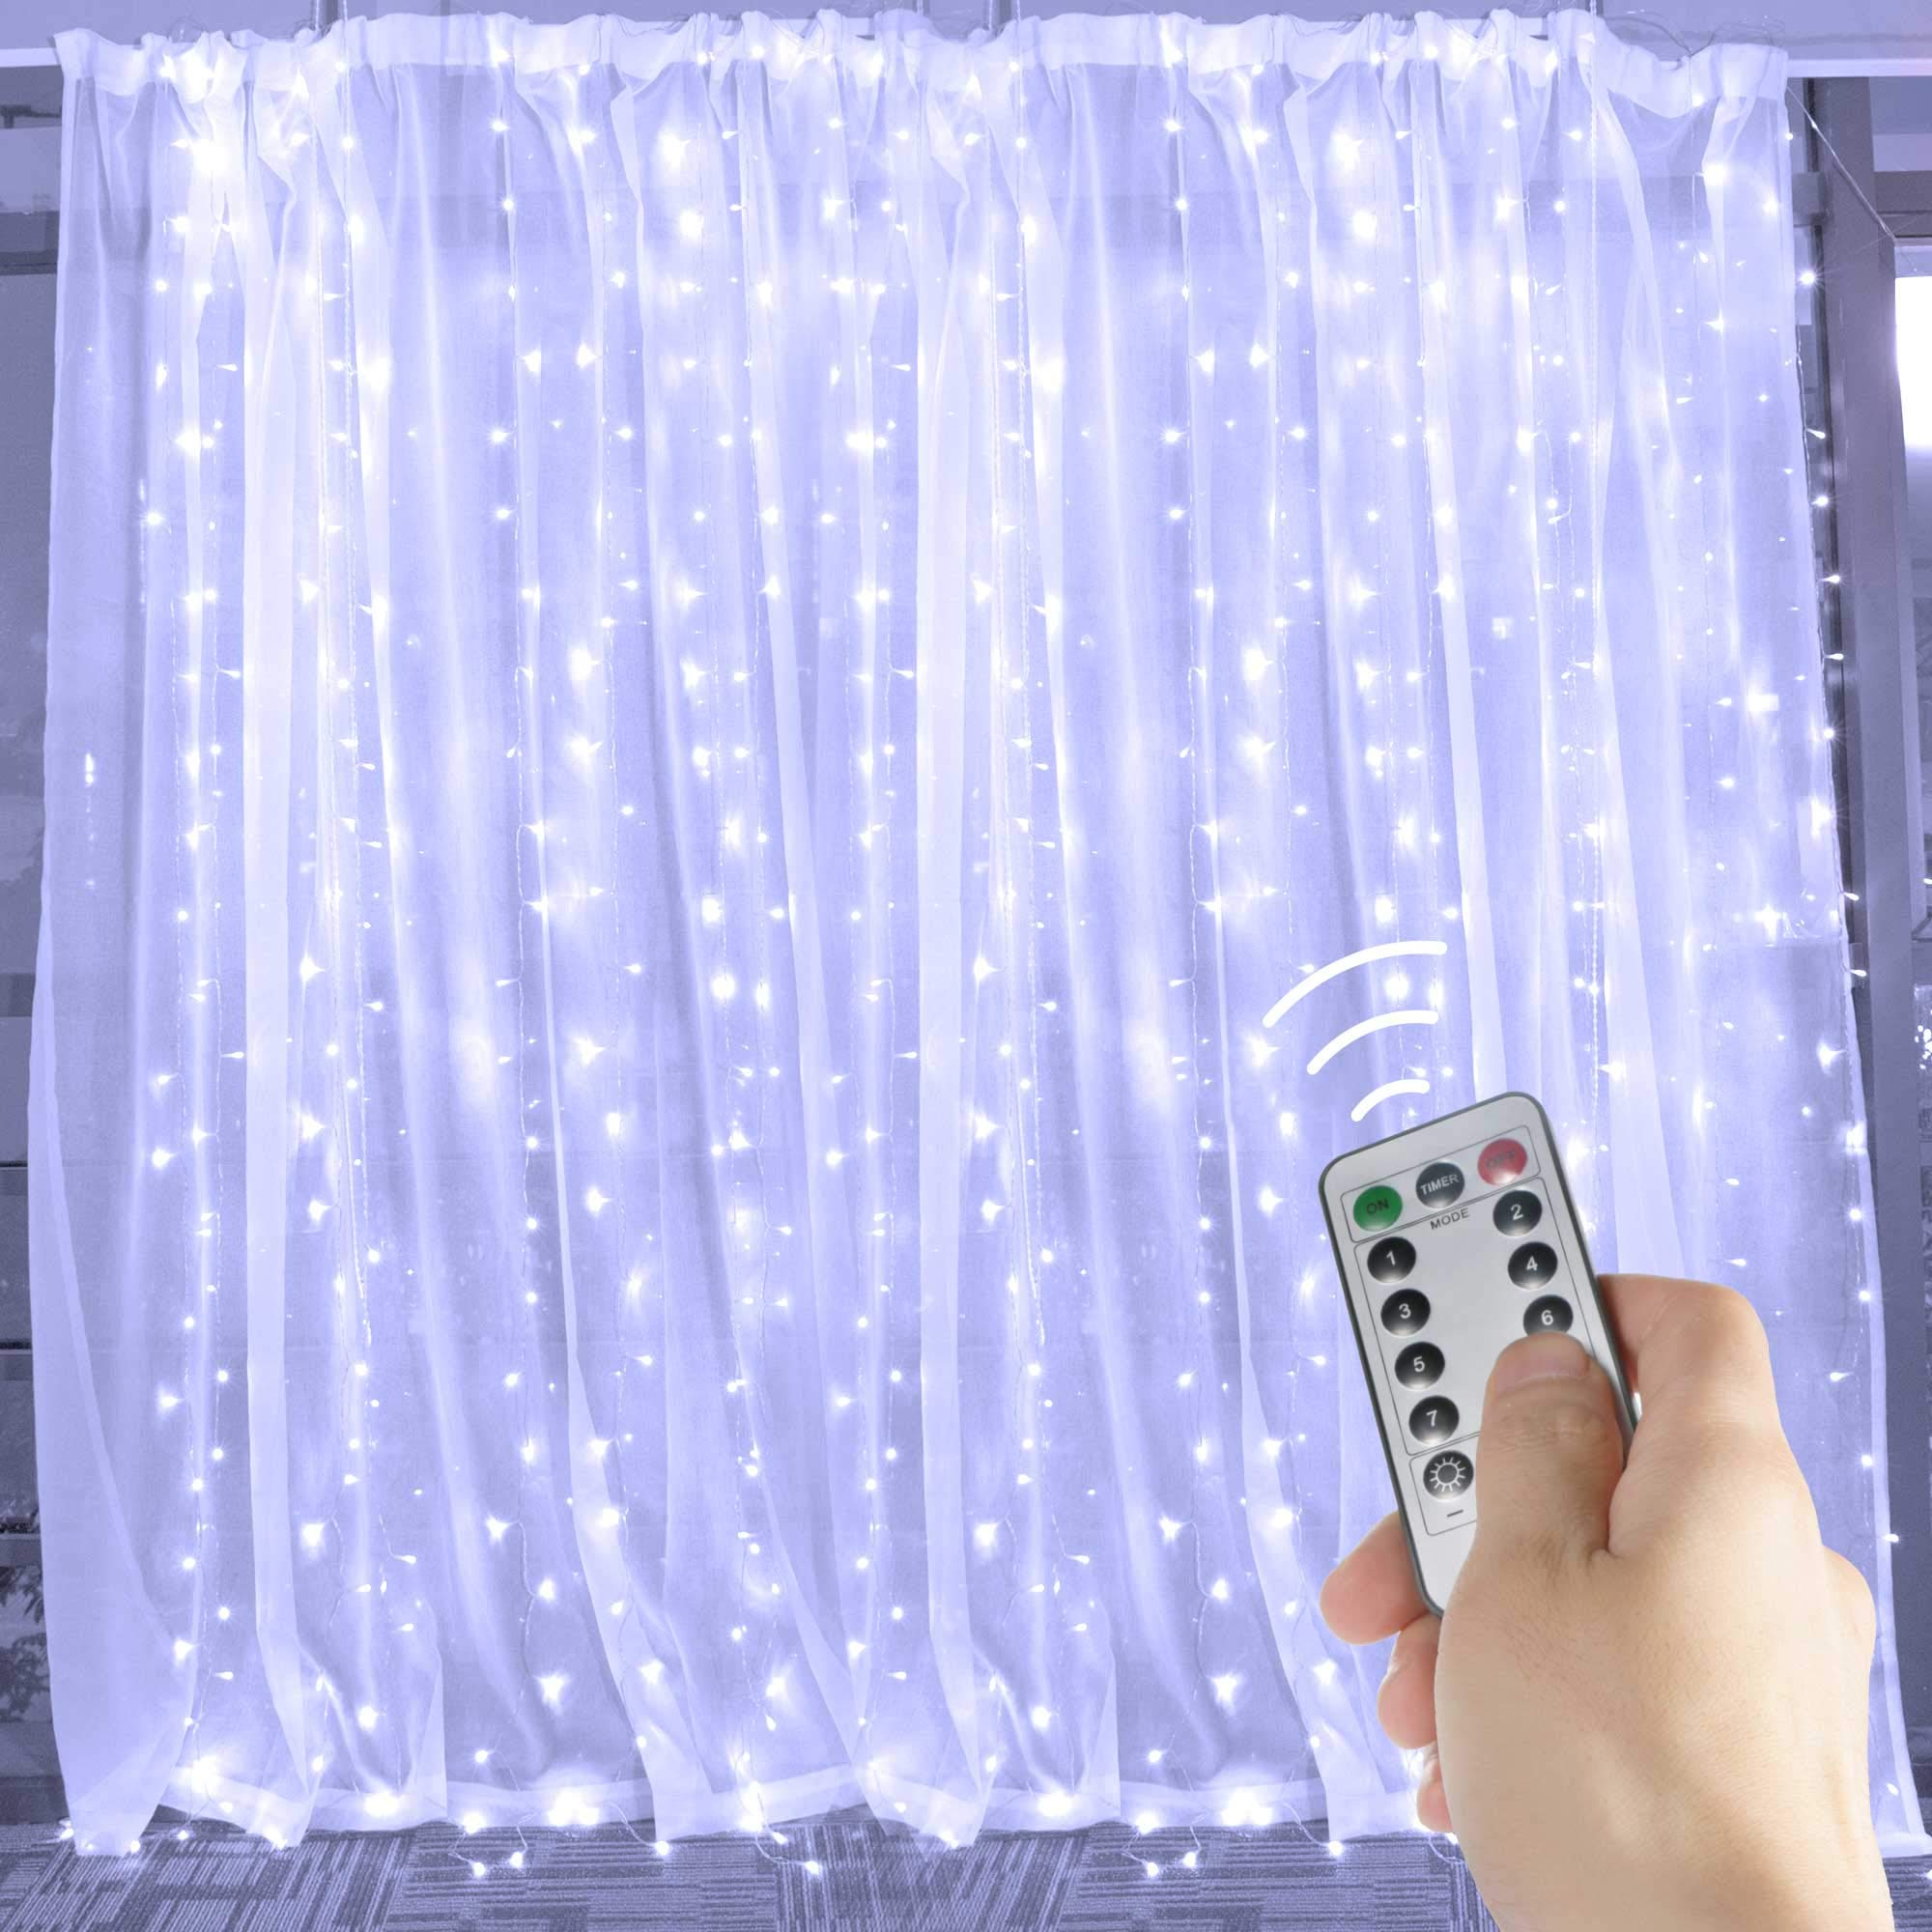 String lights Window Curtain,300 LED Icicle Fairy Twinkle Starry Lights-UL Listed for Indoor and Outdoor, Wedding, Christmas, Home Bedroom Wall Decoration, Party (9.8ftx9.8ft, Pure white)